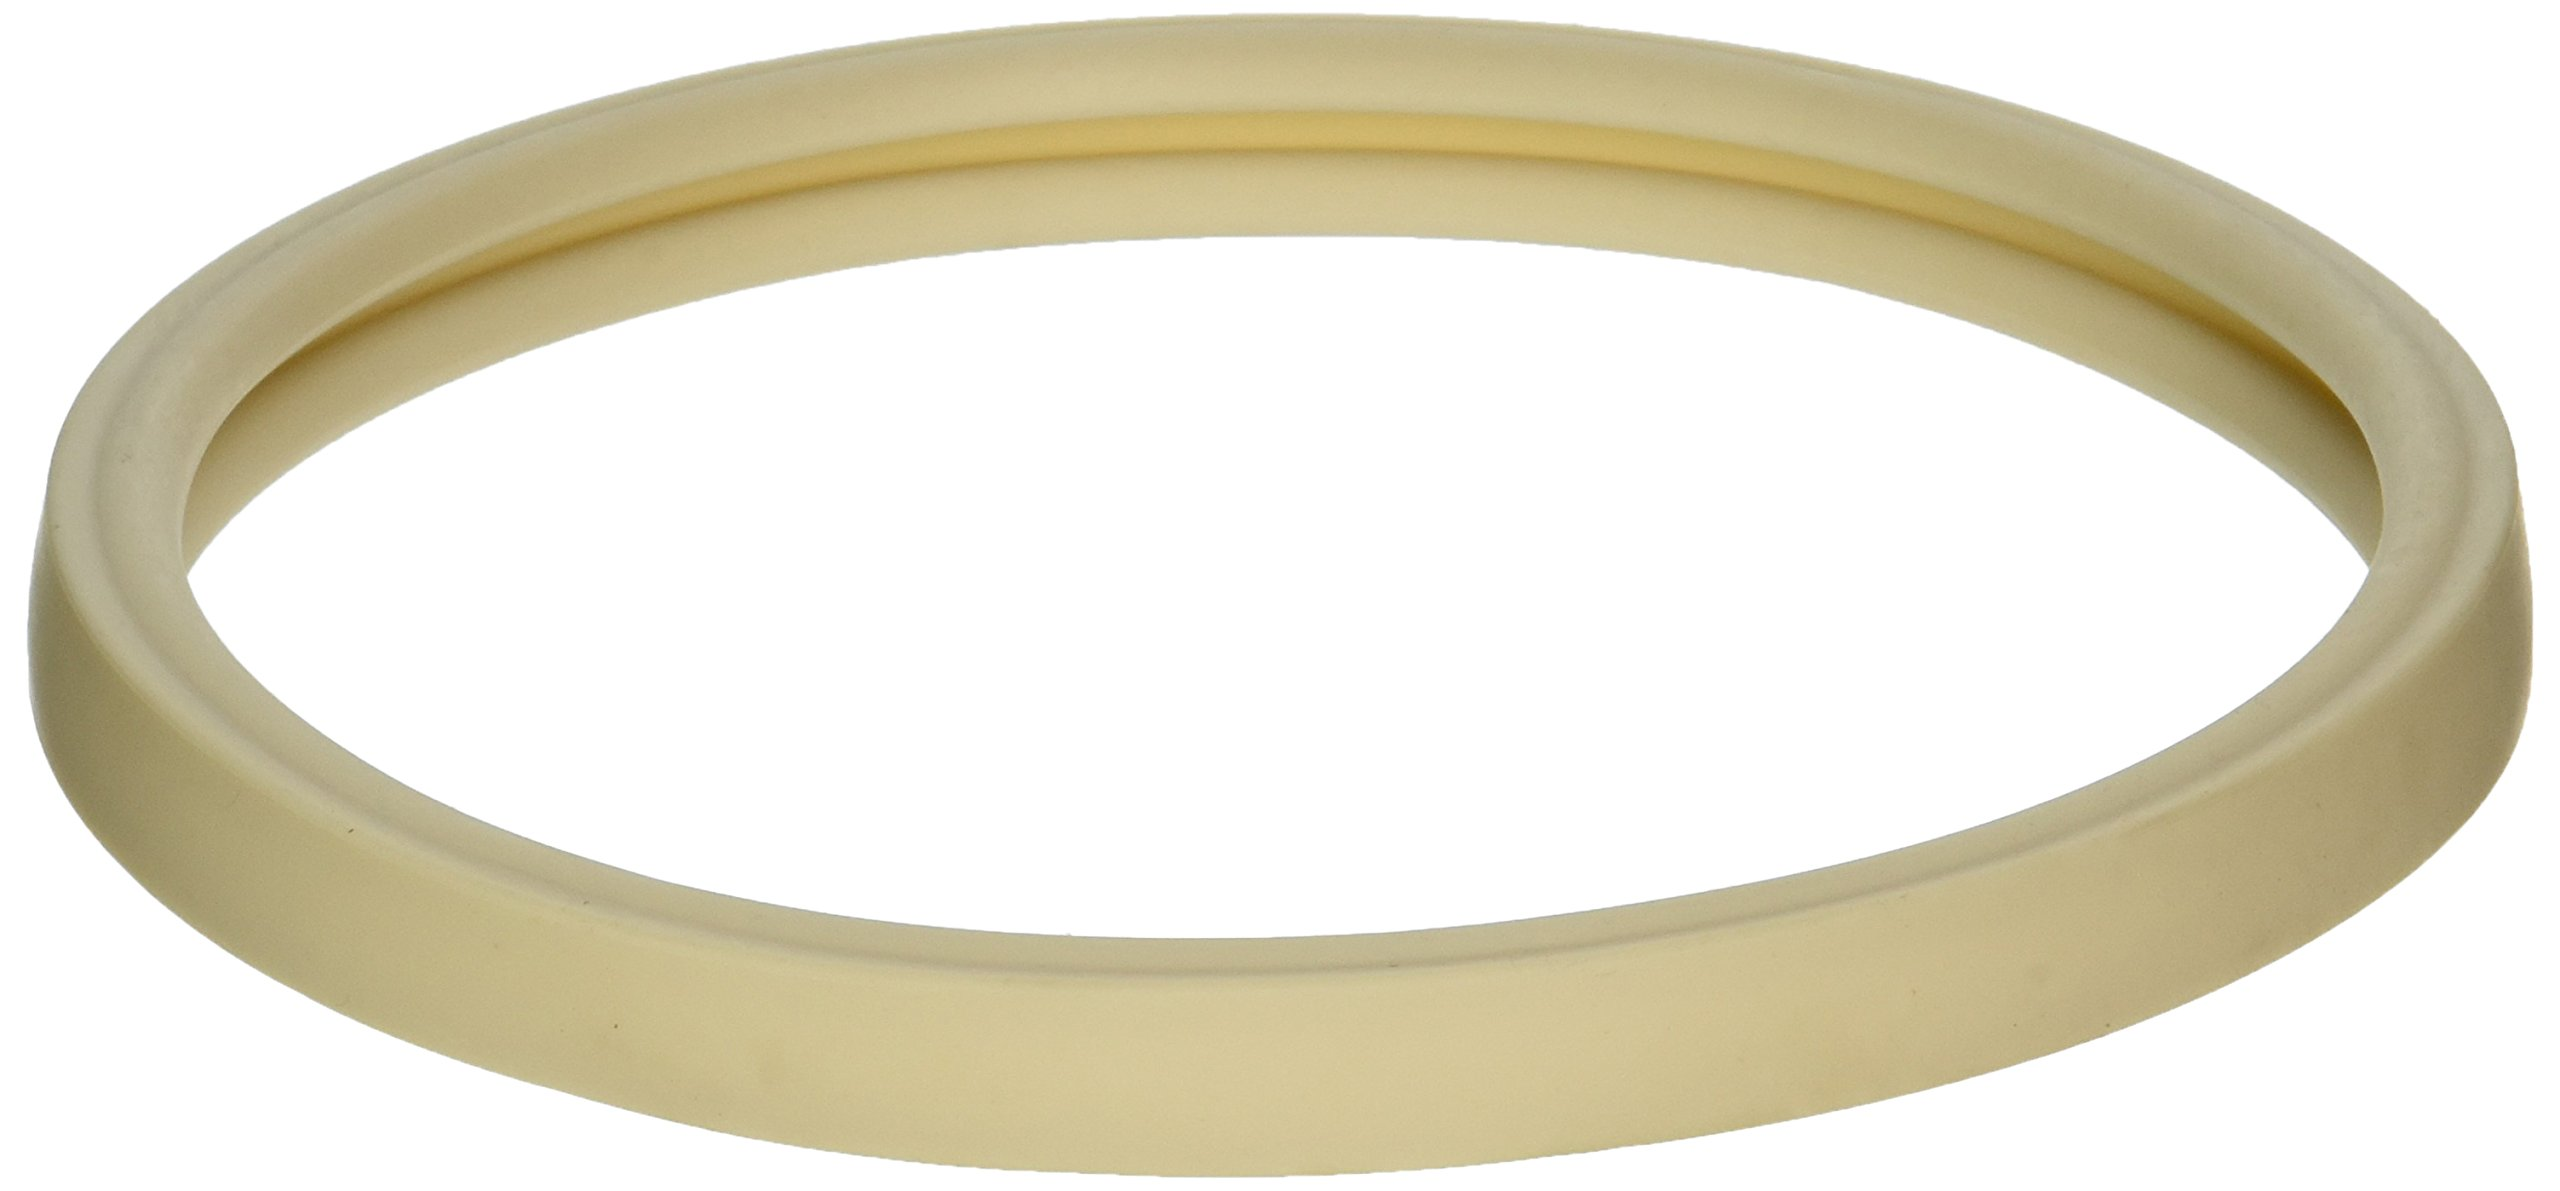 Pentair 79101600Z Lens Gasket Replacement Kit AmerLite Pool and Spa Light